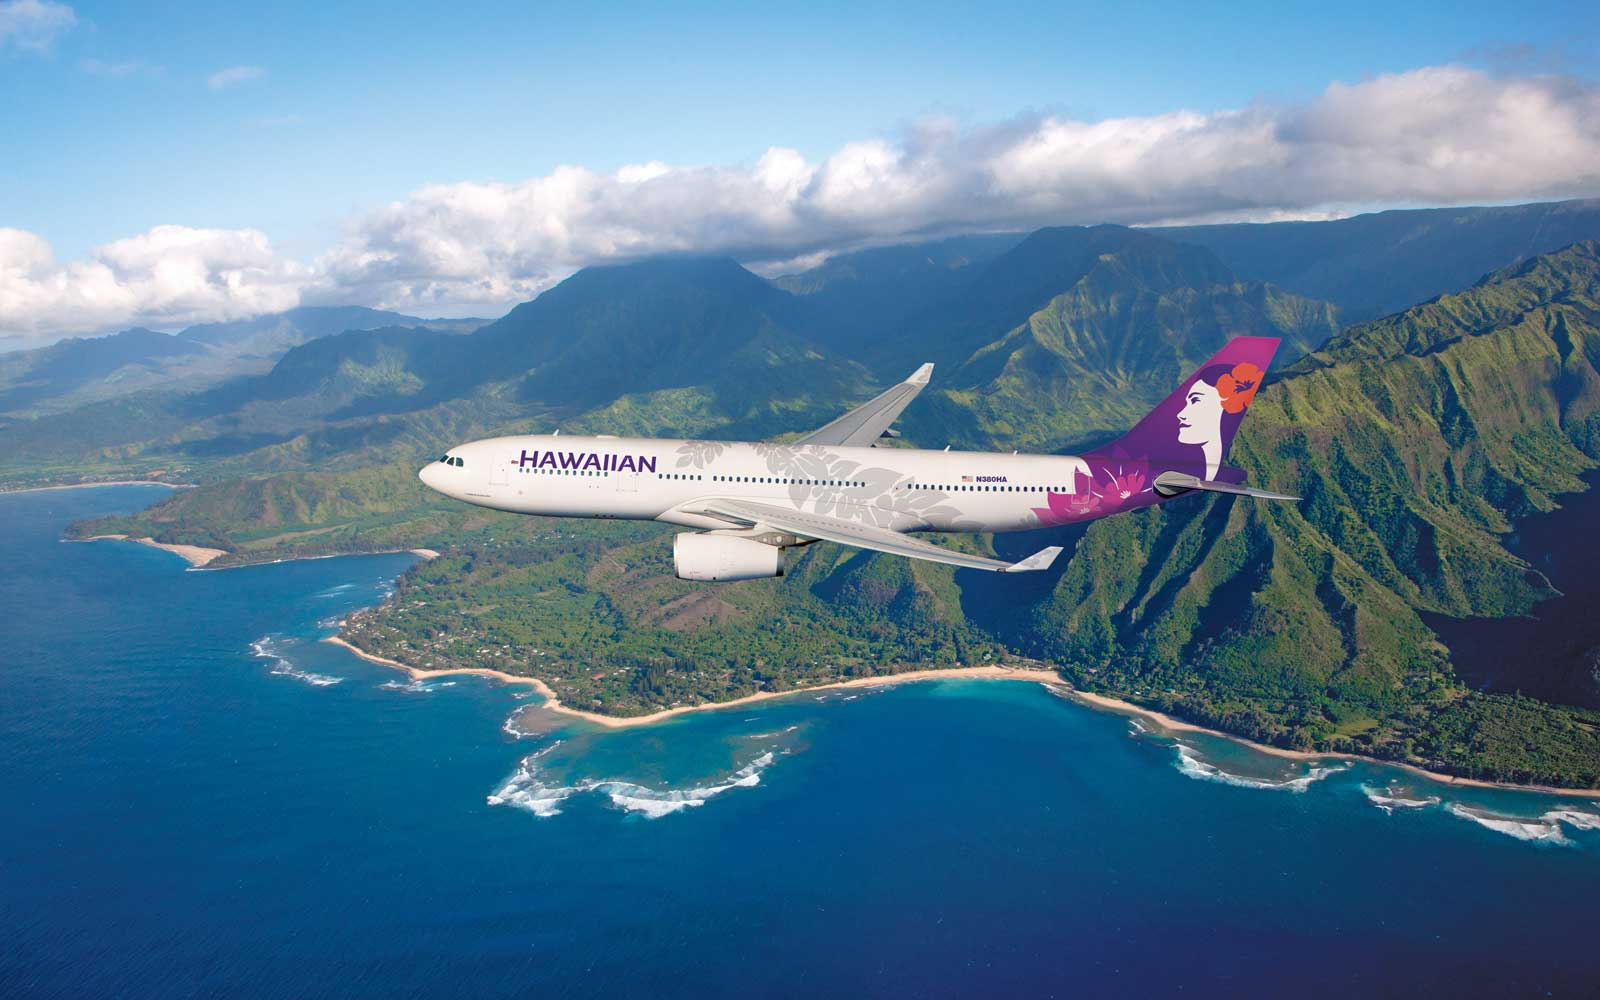 12. Hawaiian Airlines